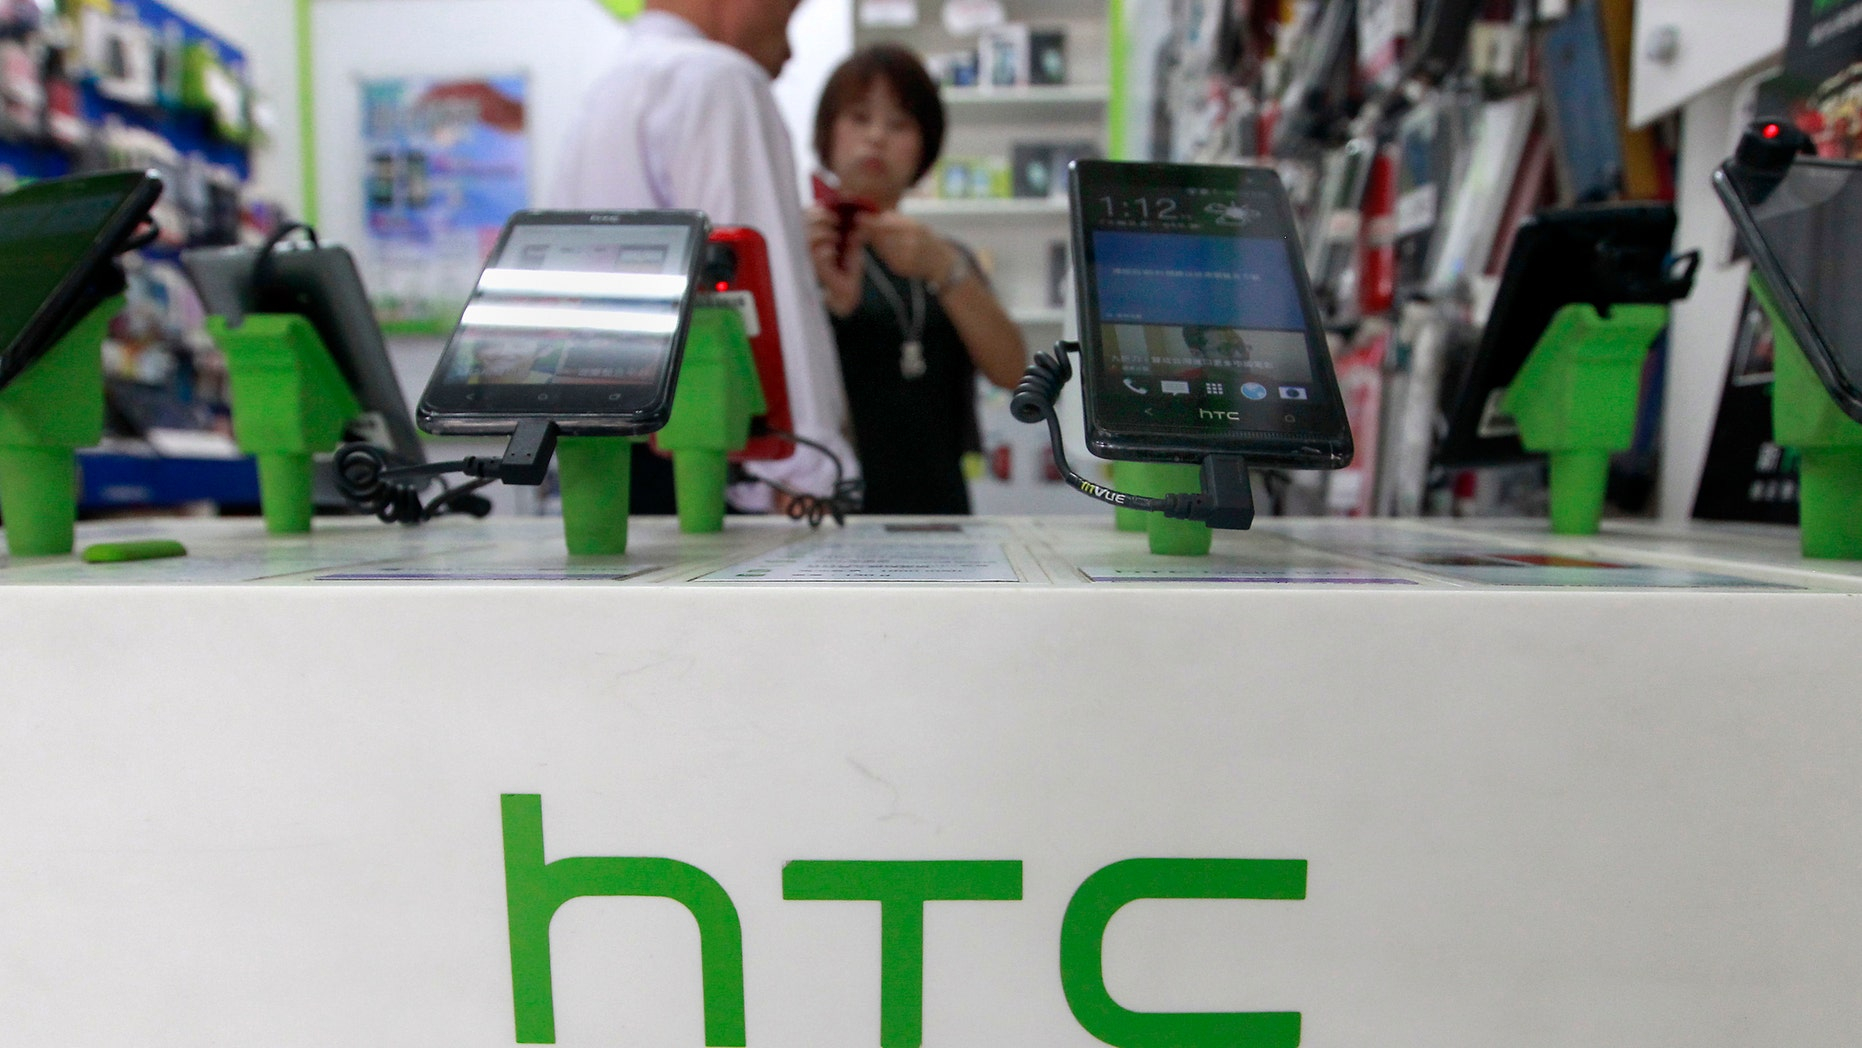 Customers look at HTC smartphones in a mobile phone shop in Taipei July 30, 2013. Taiwan's HTC Corp expects revenue to fall as much as 30 percent in the third quarter compared to the previous three months, far below analysts' forecasts. REUTERS/Pichi Chuang (TAIWAN - Tags: BUSINESS TELECOMS) - RTX124KL